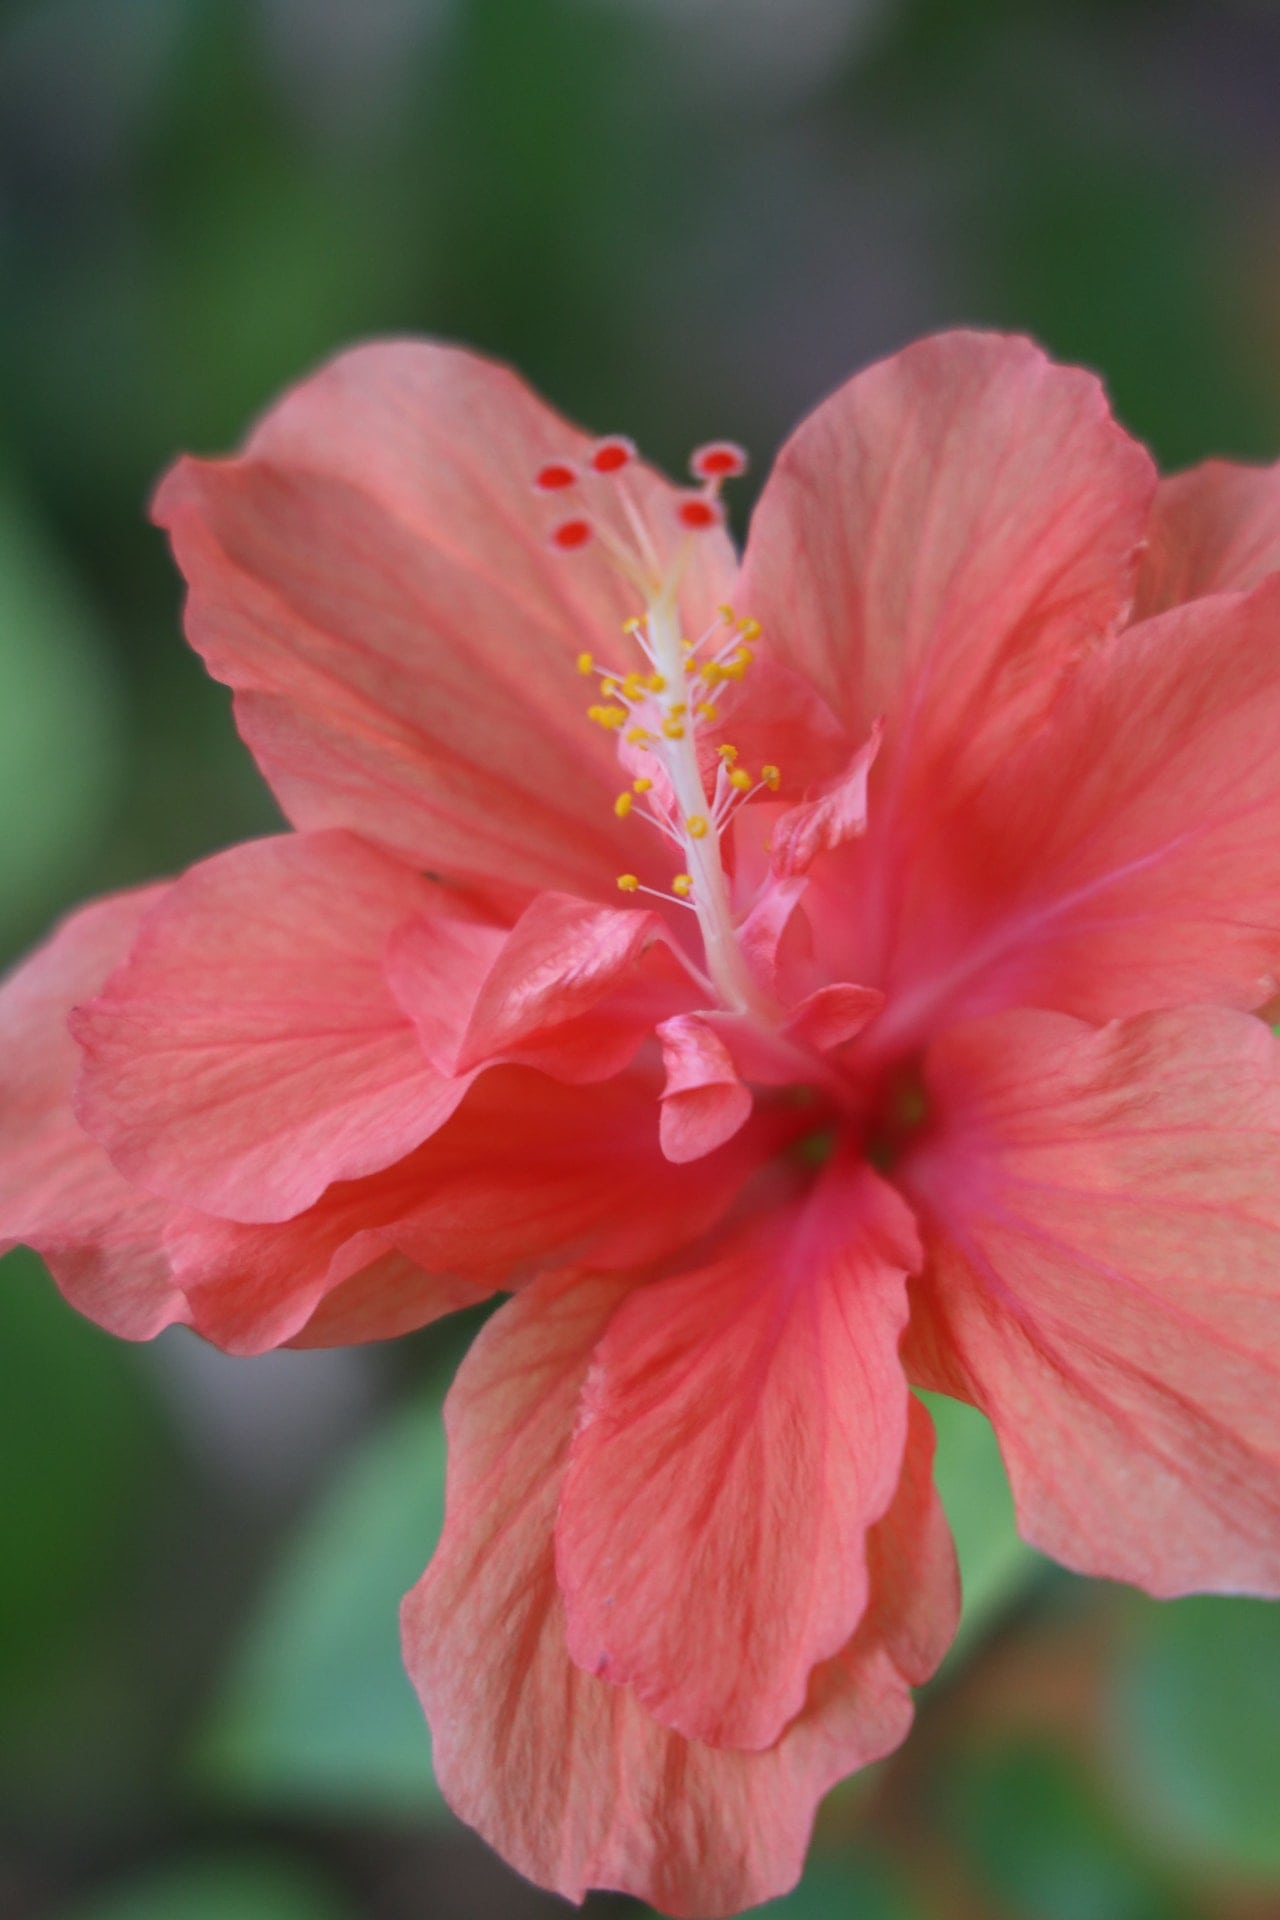 A rose hibiscus flower that can be used for various medicinal purposes